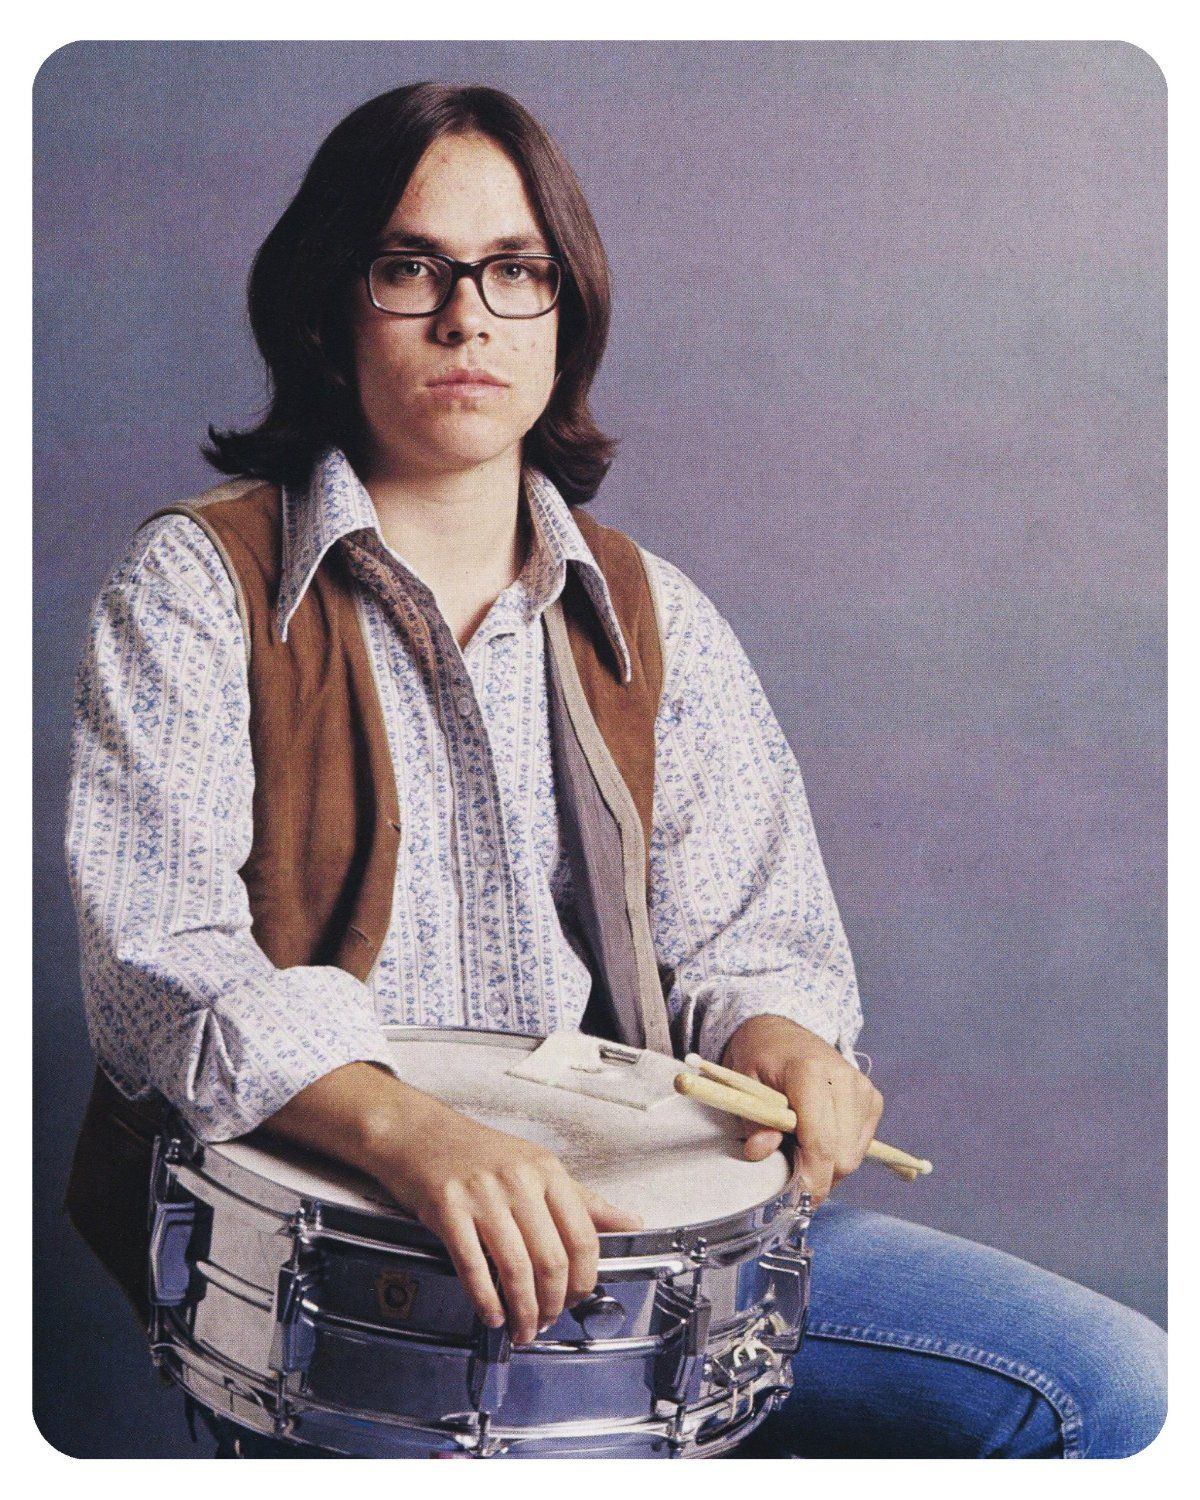 August 5, 1992 Jeff Porcaro drummer from Toto died age